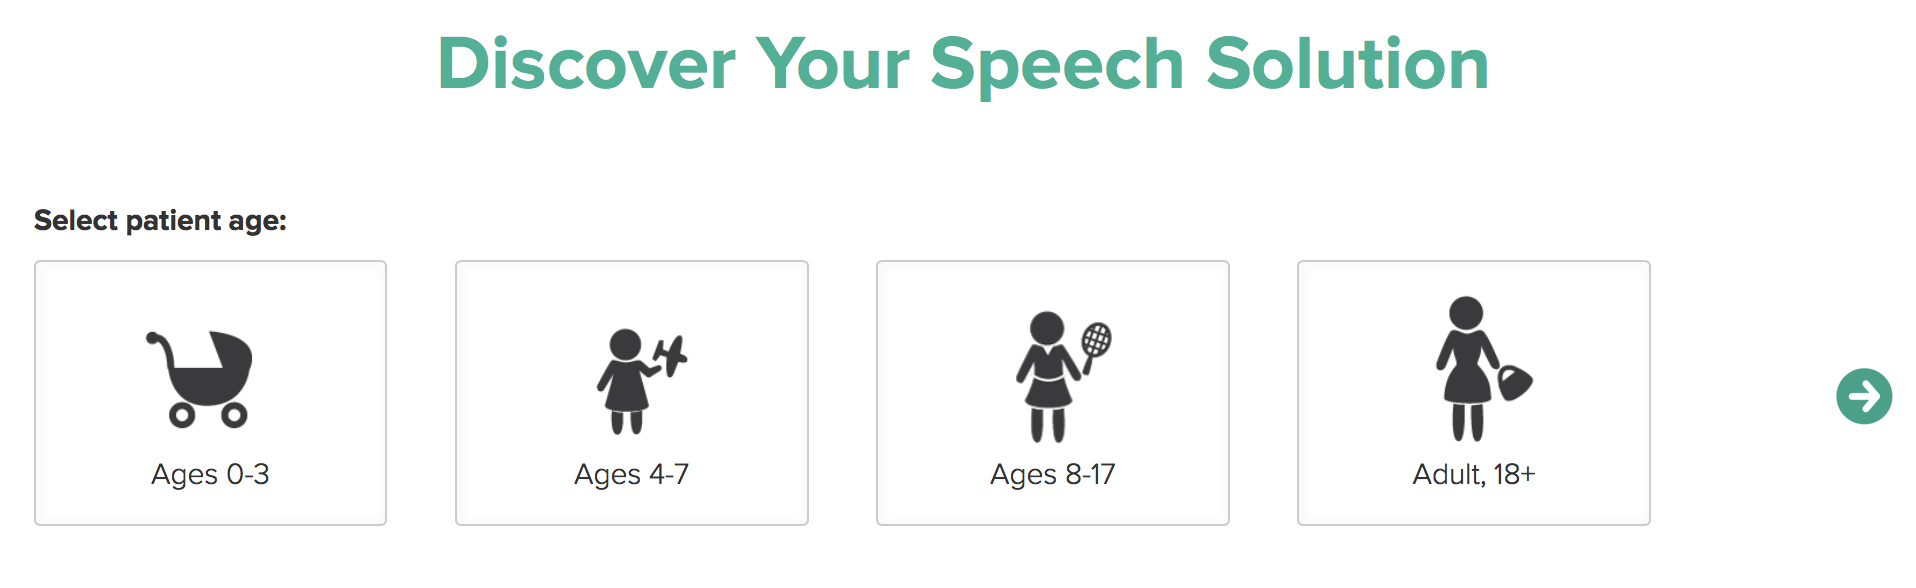 Find your speech solution